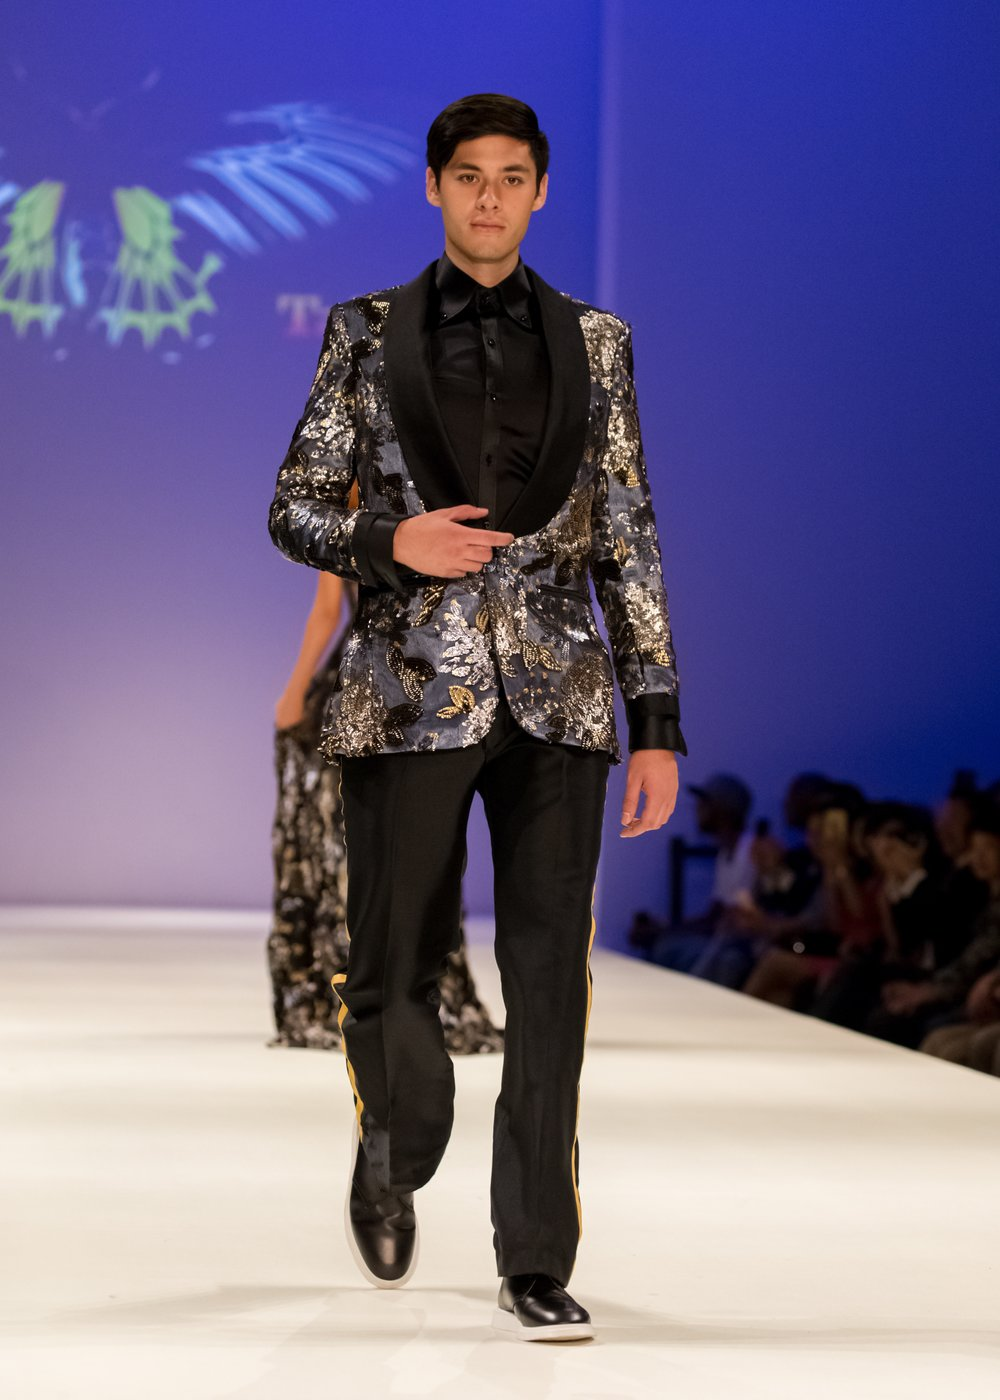 Red carpet menswear - Malan Breton